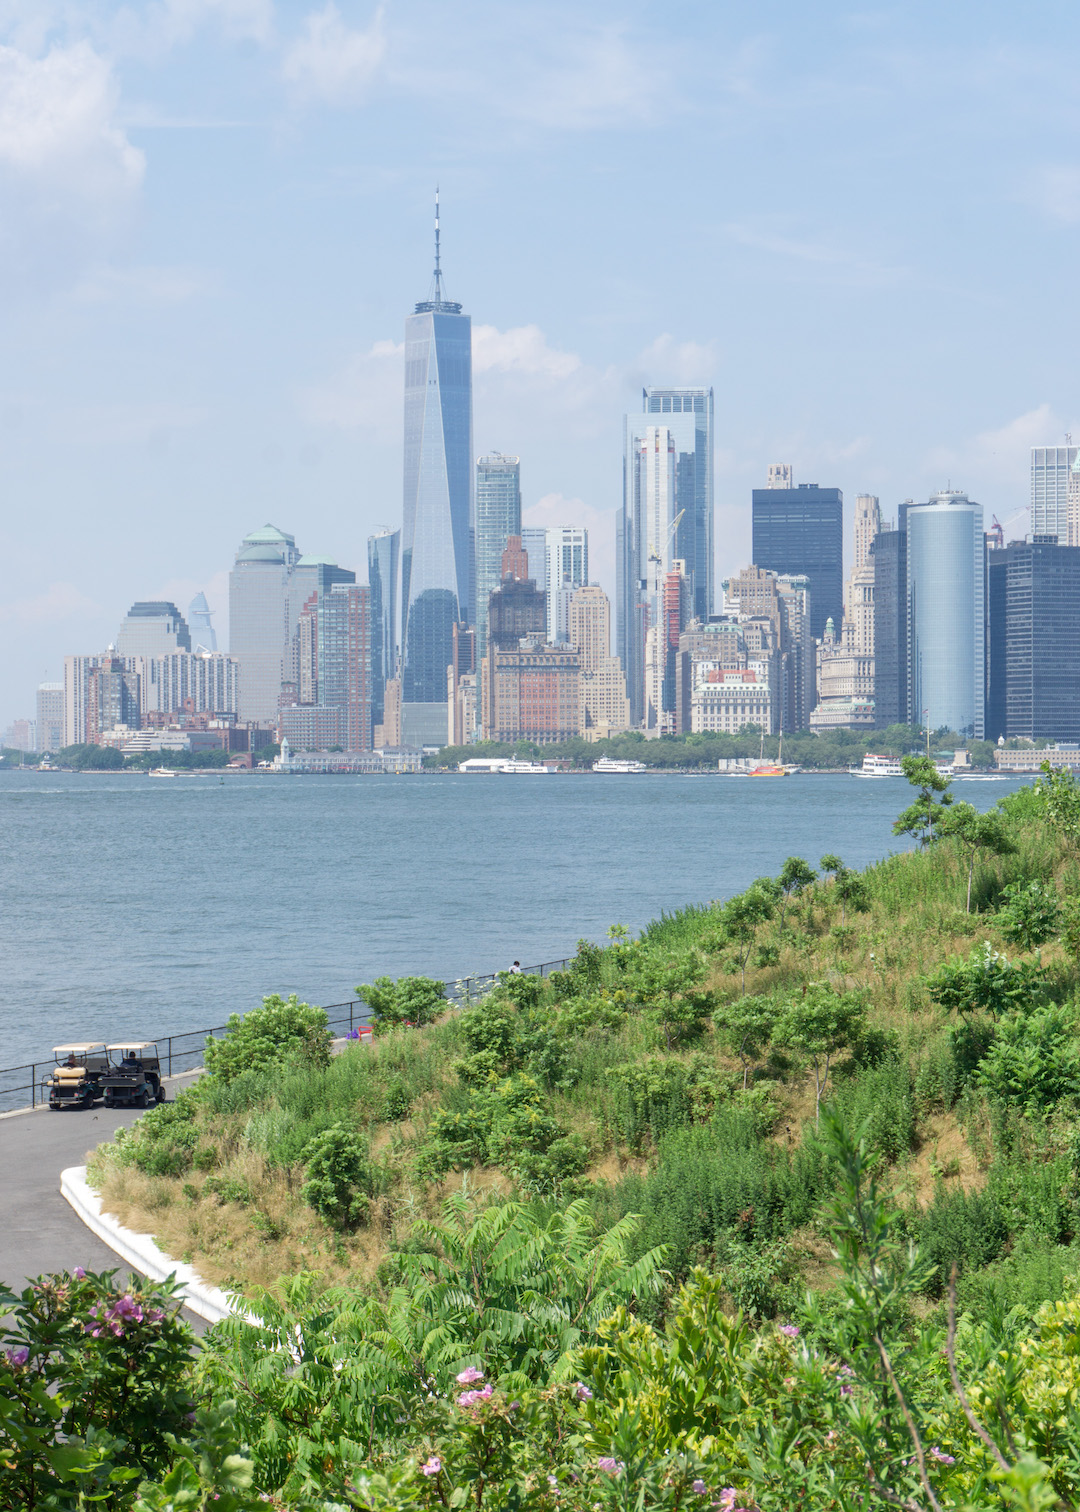 Her_Travel_Edit_NYC_Governors_Island